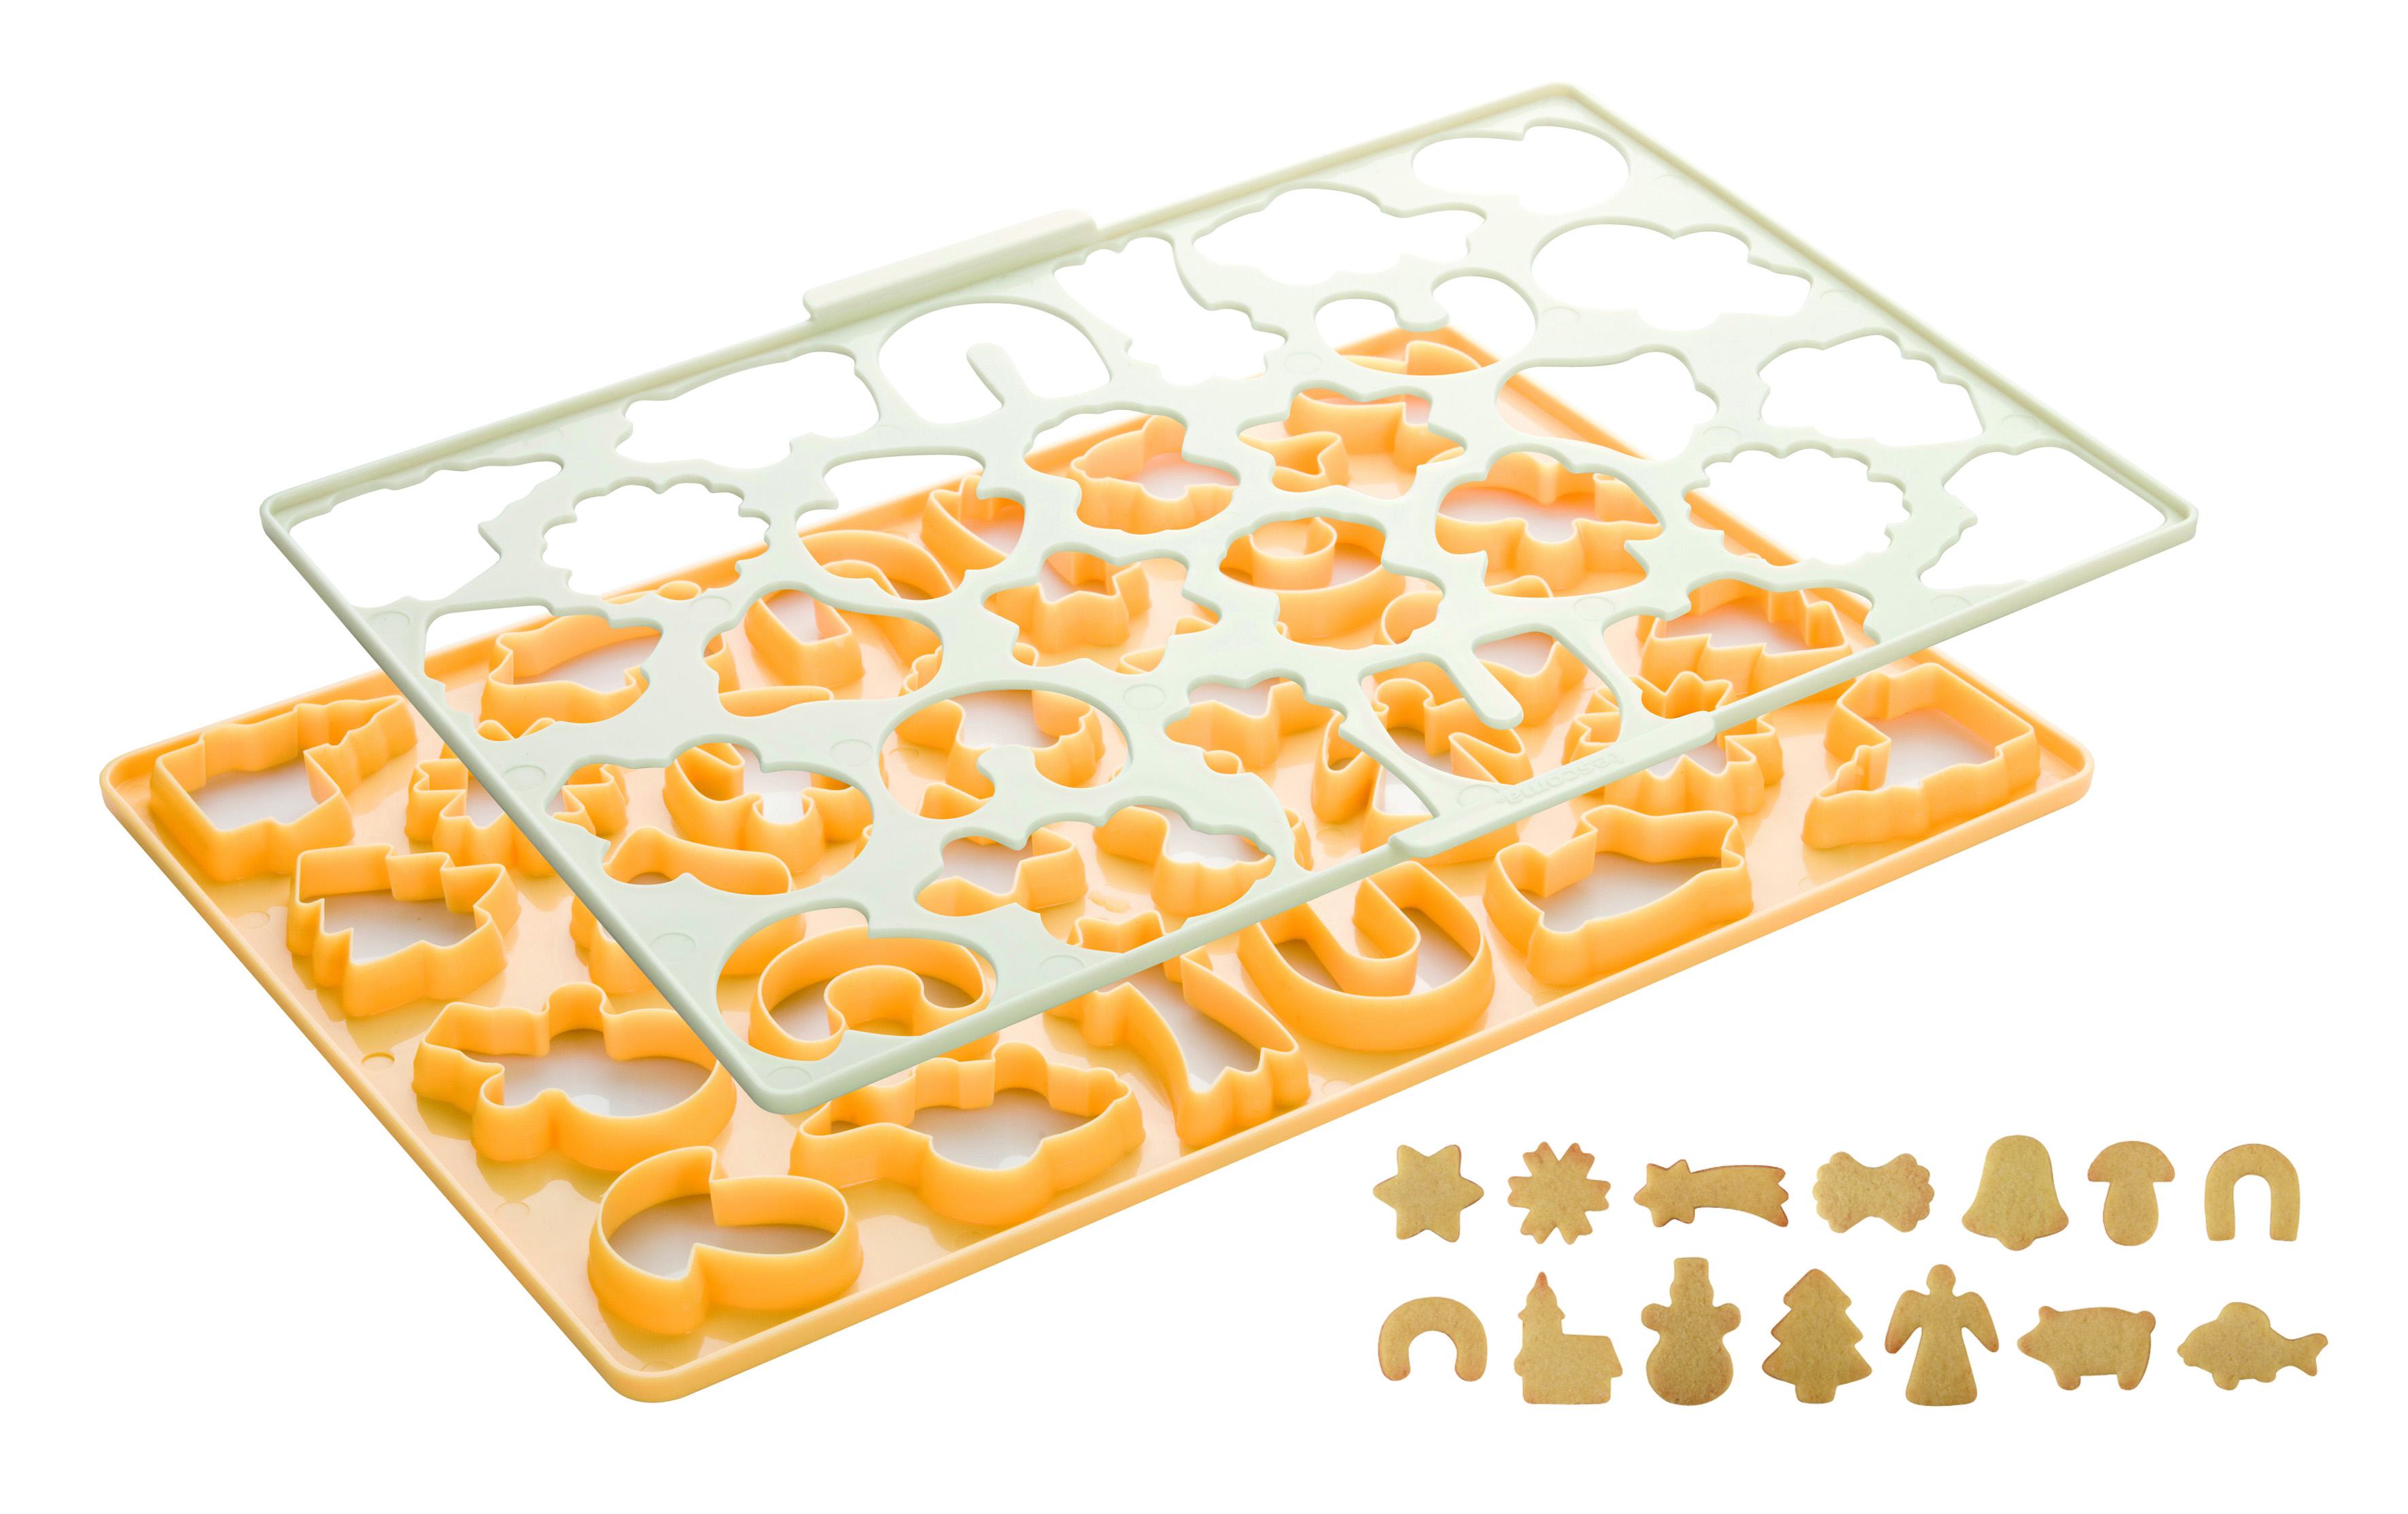 Christmas Cookie Cutting Sheet Delicia